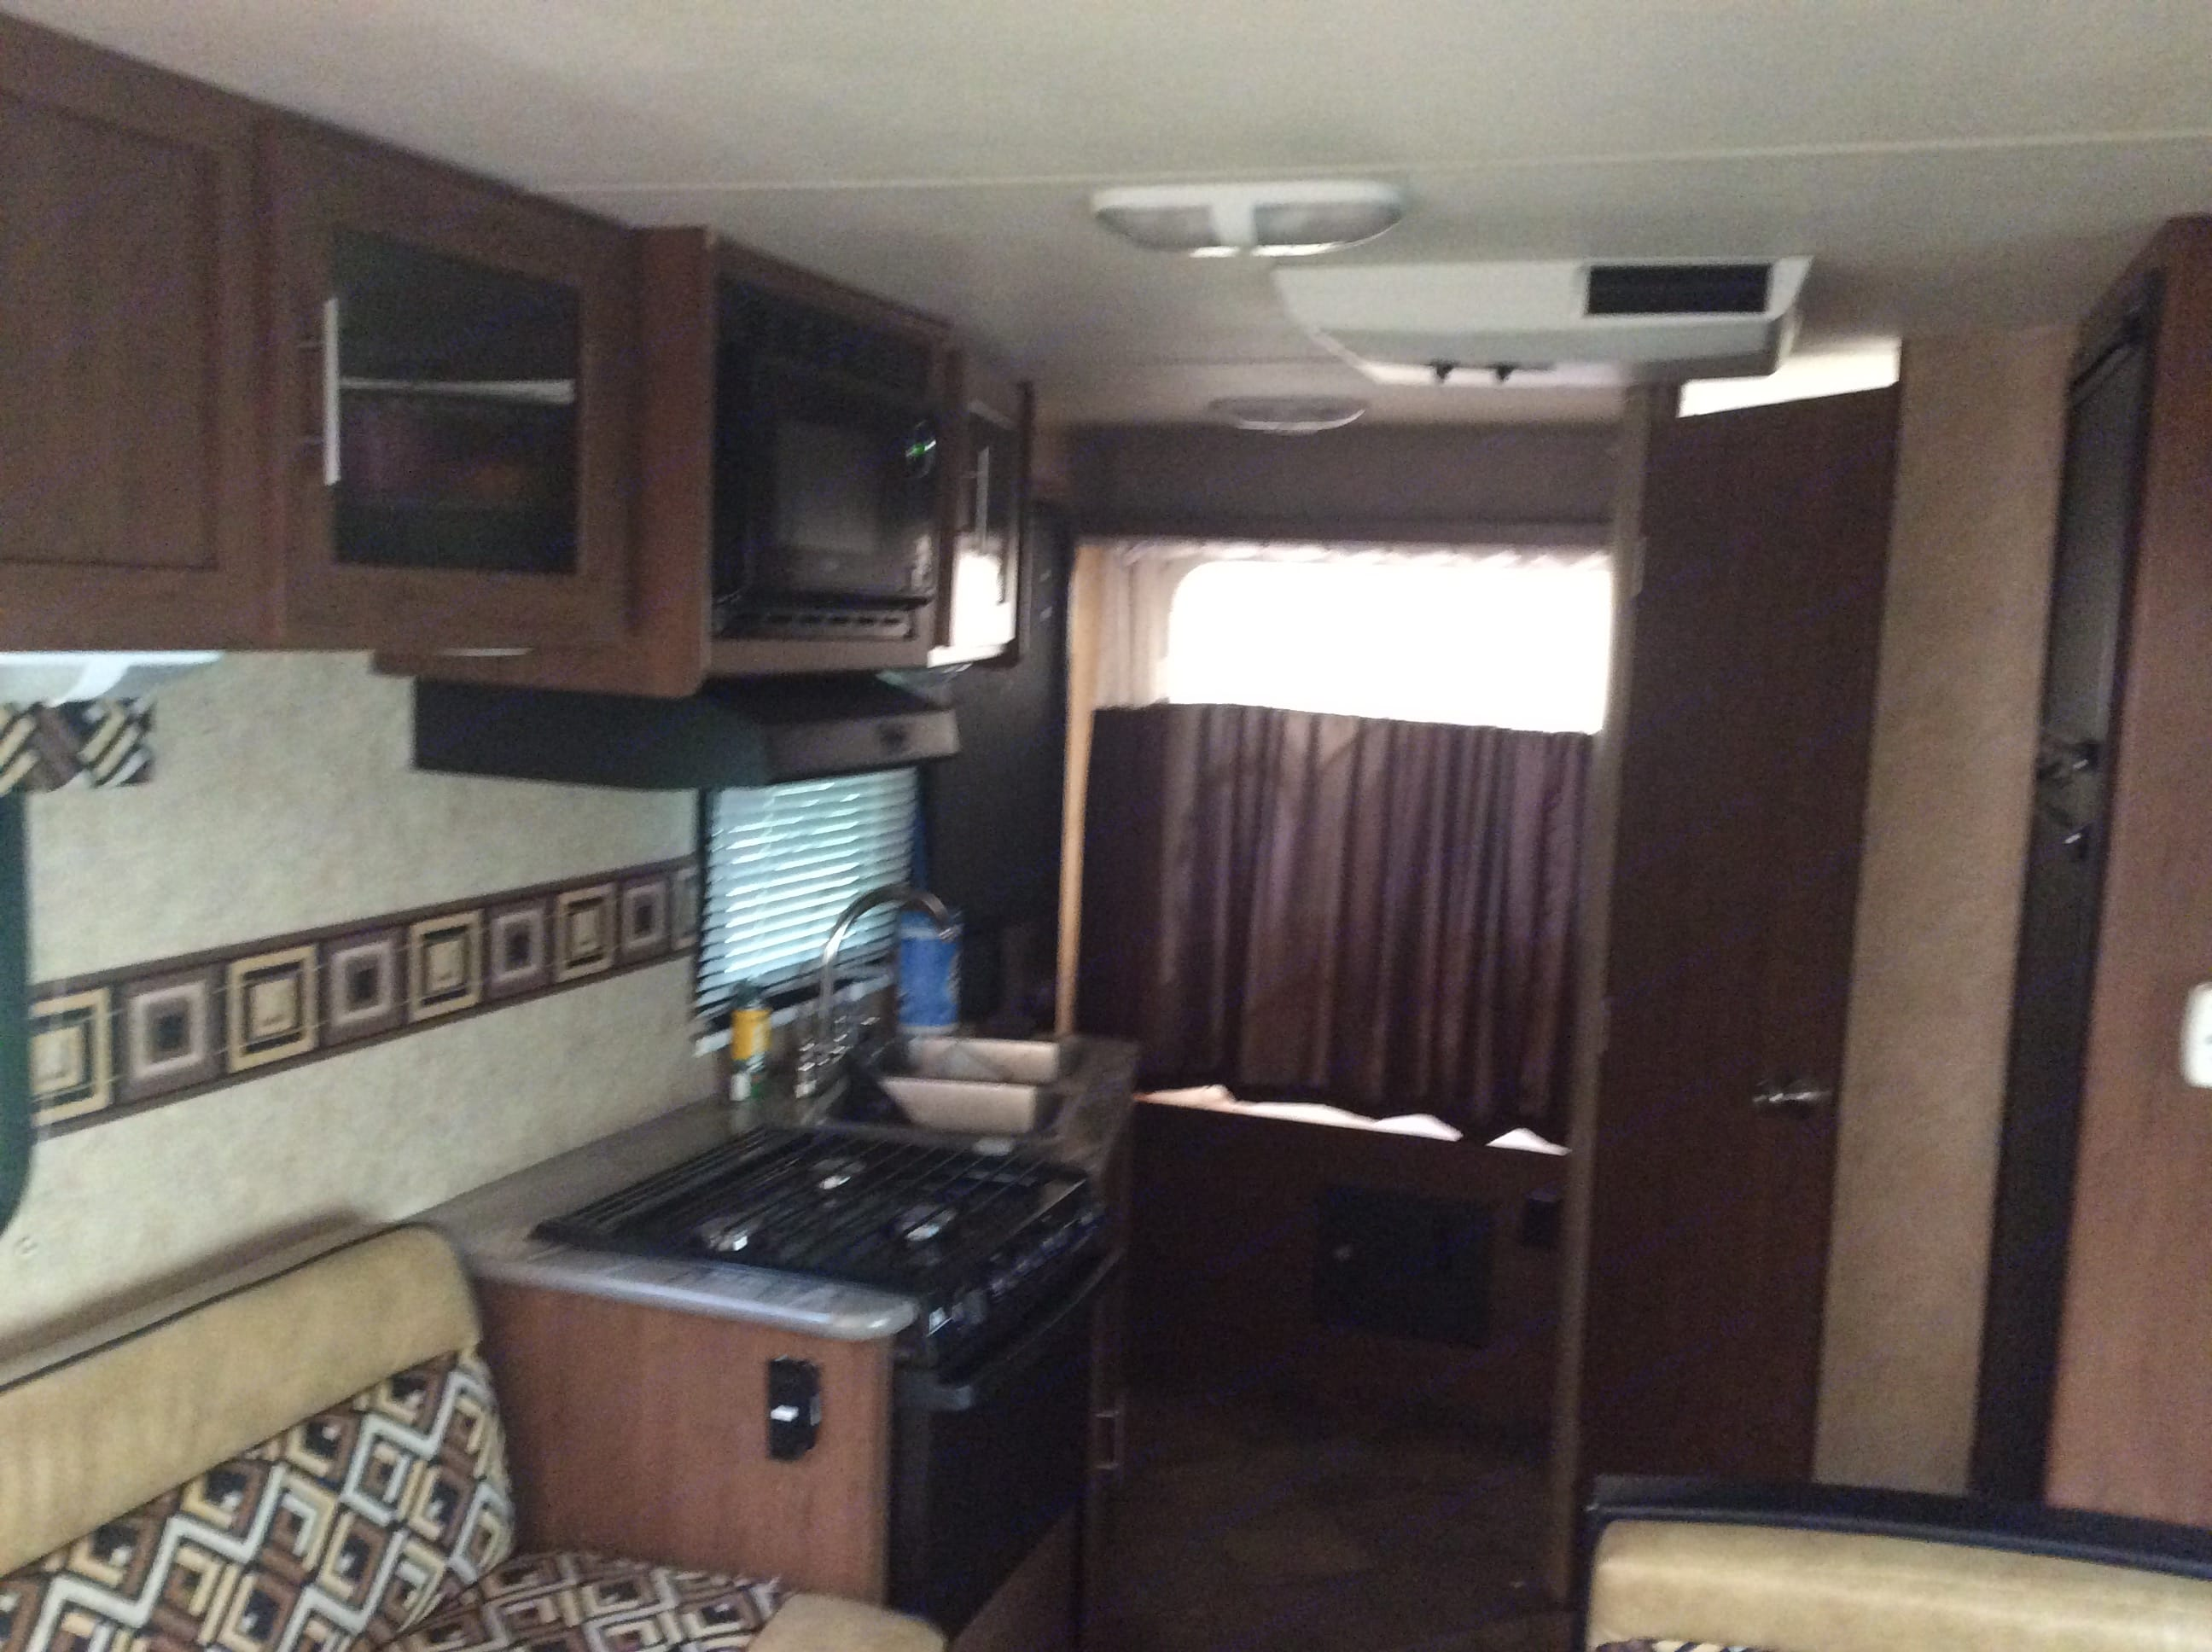 Microwave, Stove, Oven, A/C Unit, Queen size bed behind curtain and door to bathroom.. Dutchmen Aerolite 2013